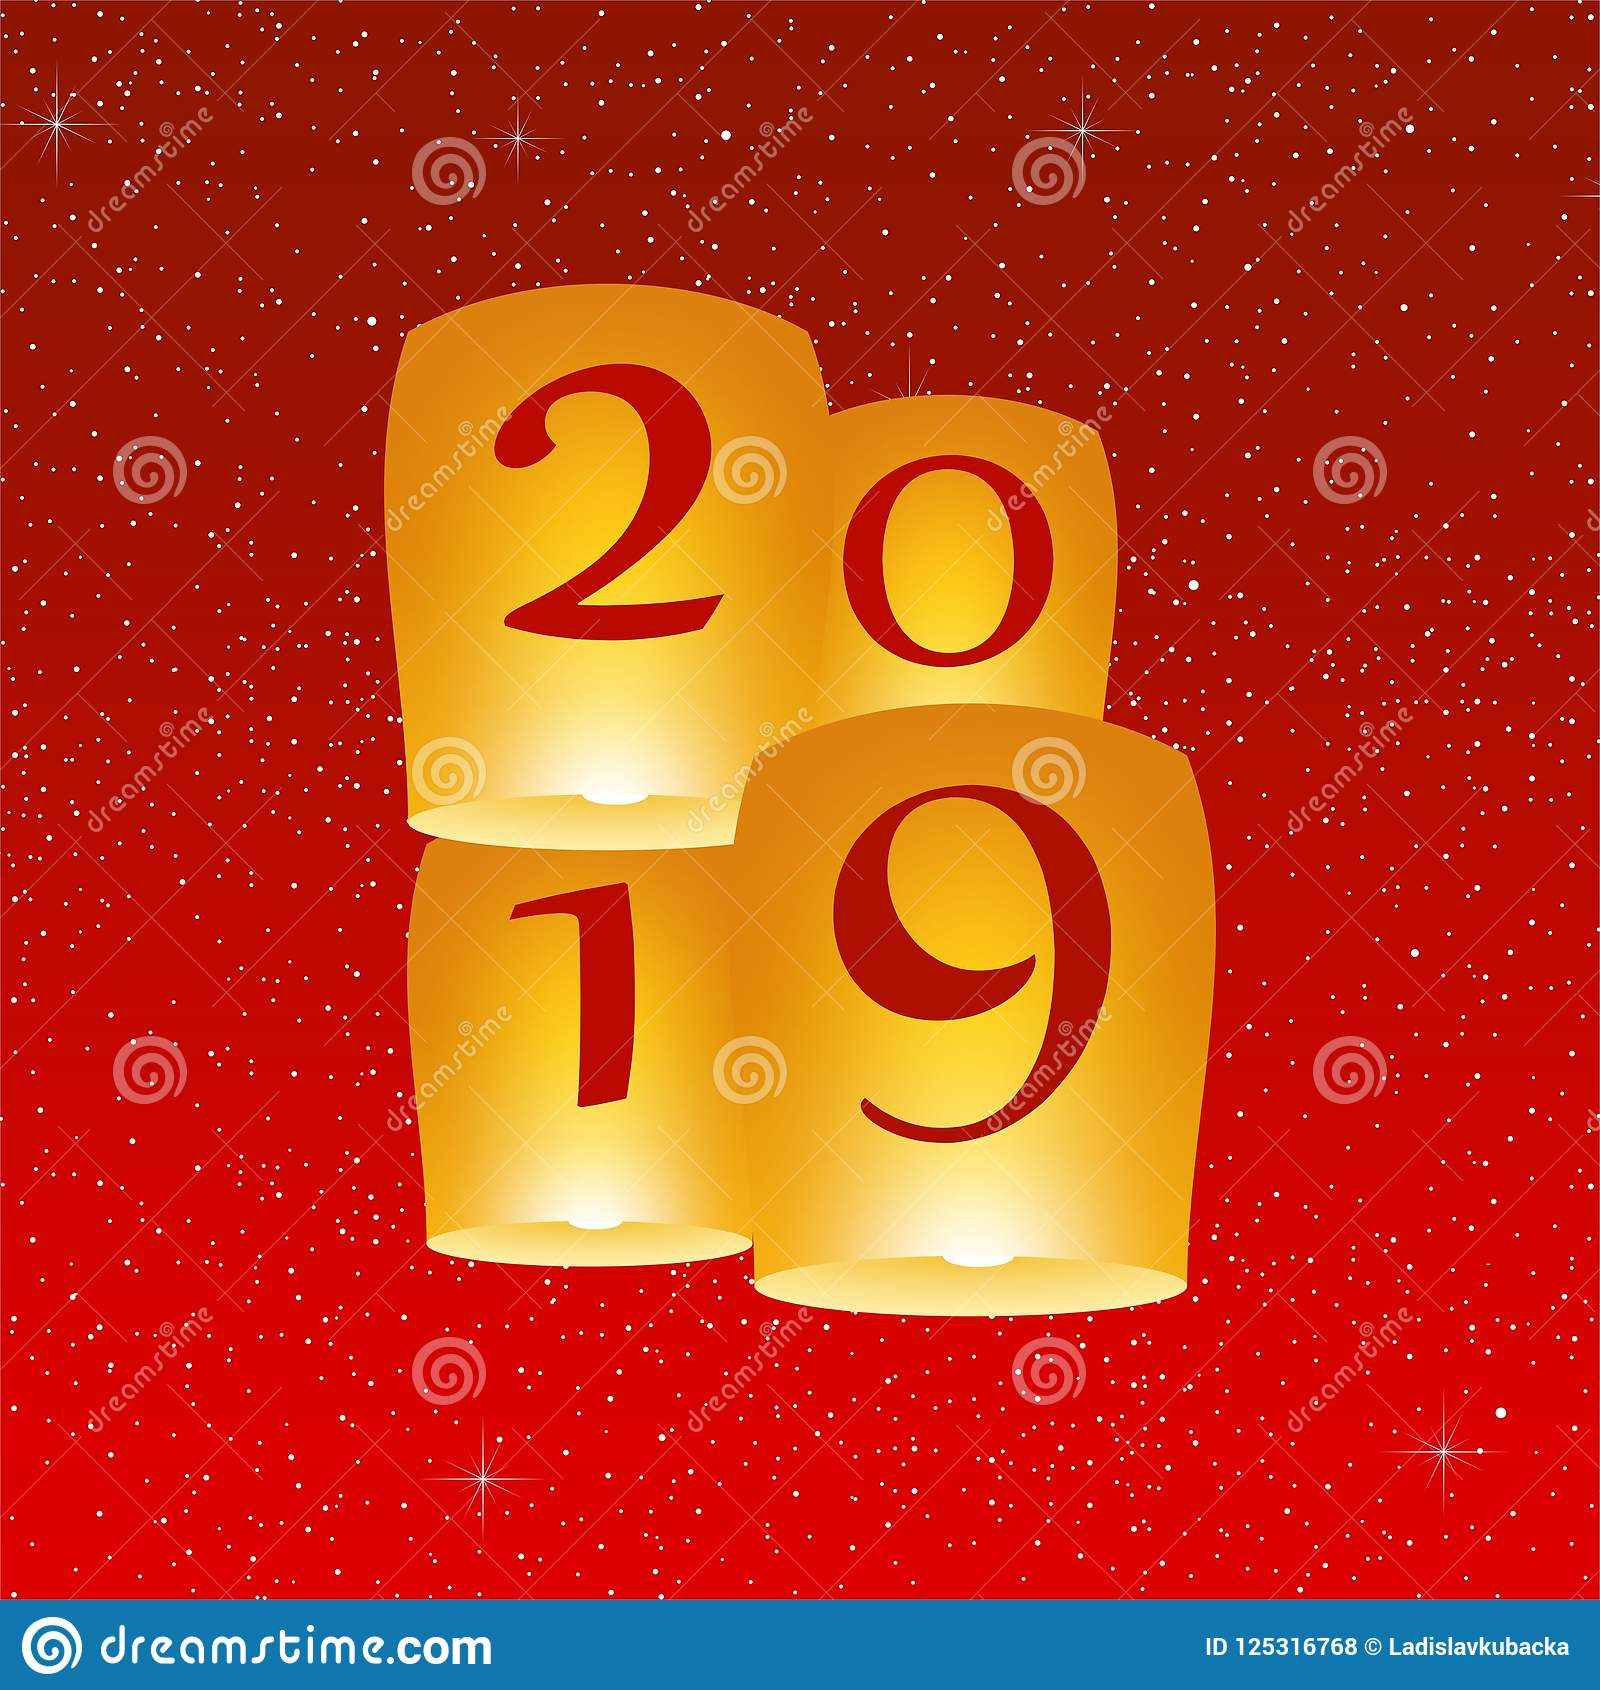 New Year Greetings For Year 2019 With Bright Red Background With